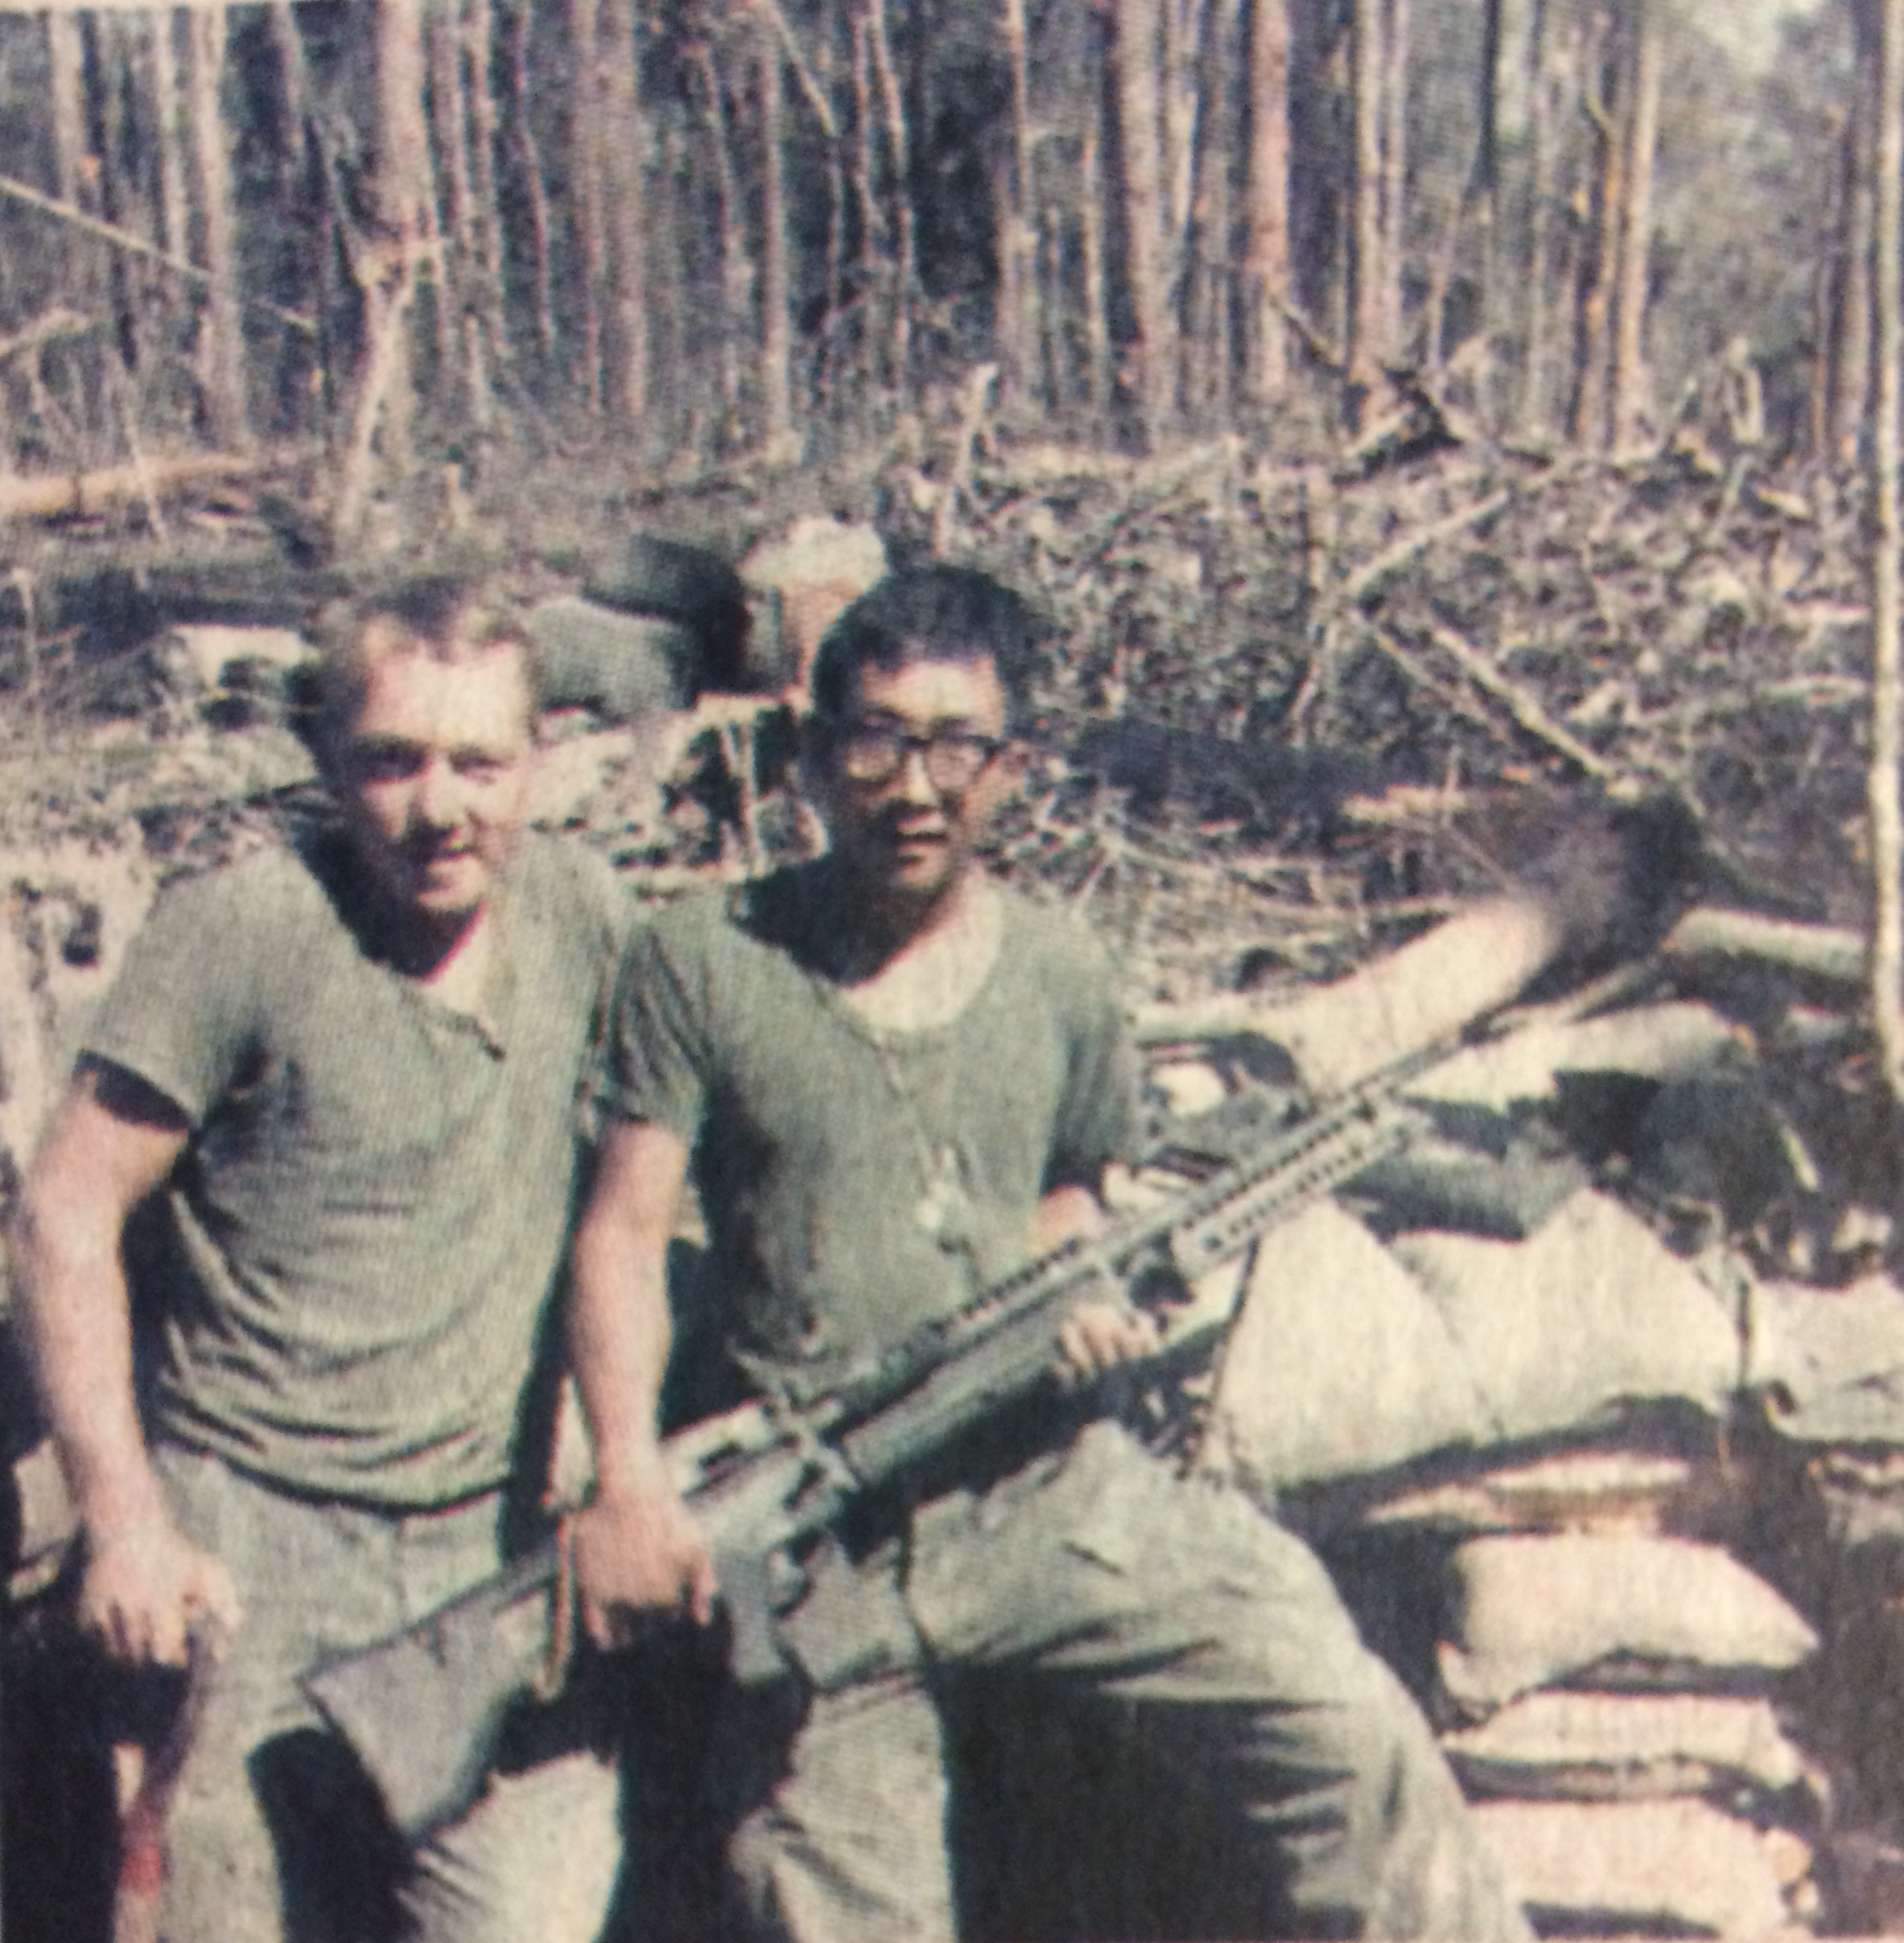 Kay Lee with buddy, Brian Bell, in Vietnam, 1967